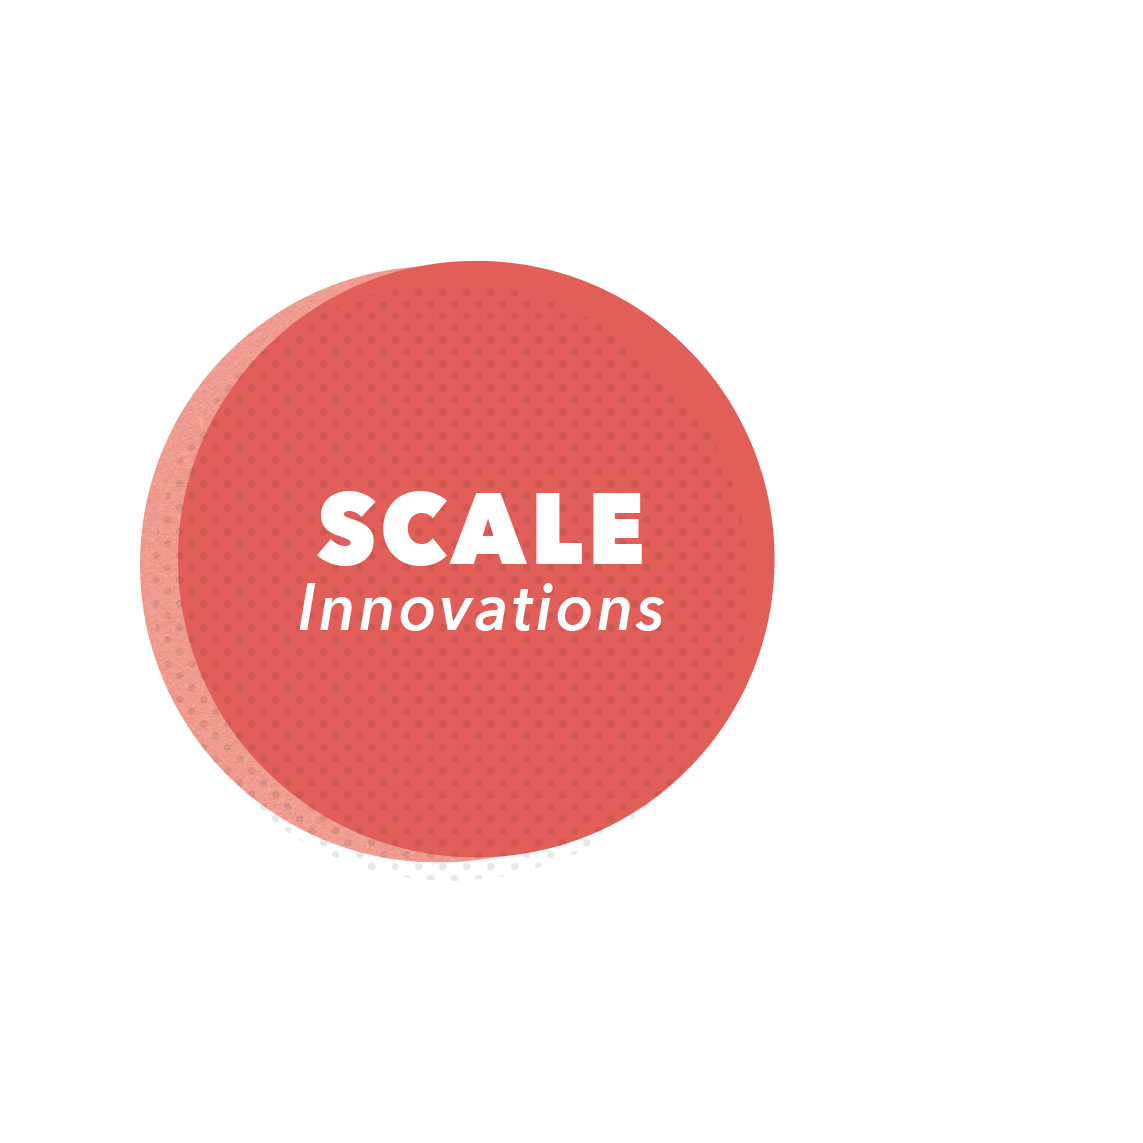 SCALE   Then we work with the most promising innovations to help them achieve scale by leveraging collaborations between networks of schools to the benefit of both the schools and entrepreneurs.